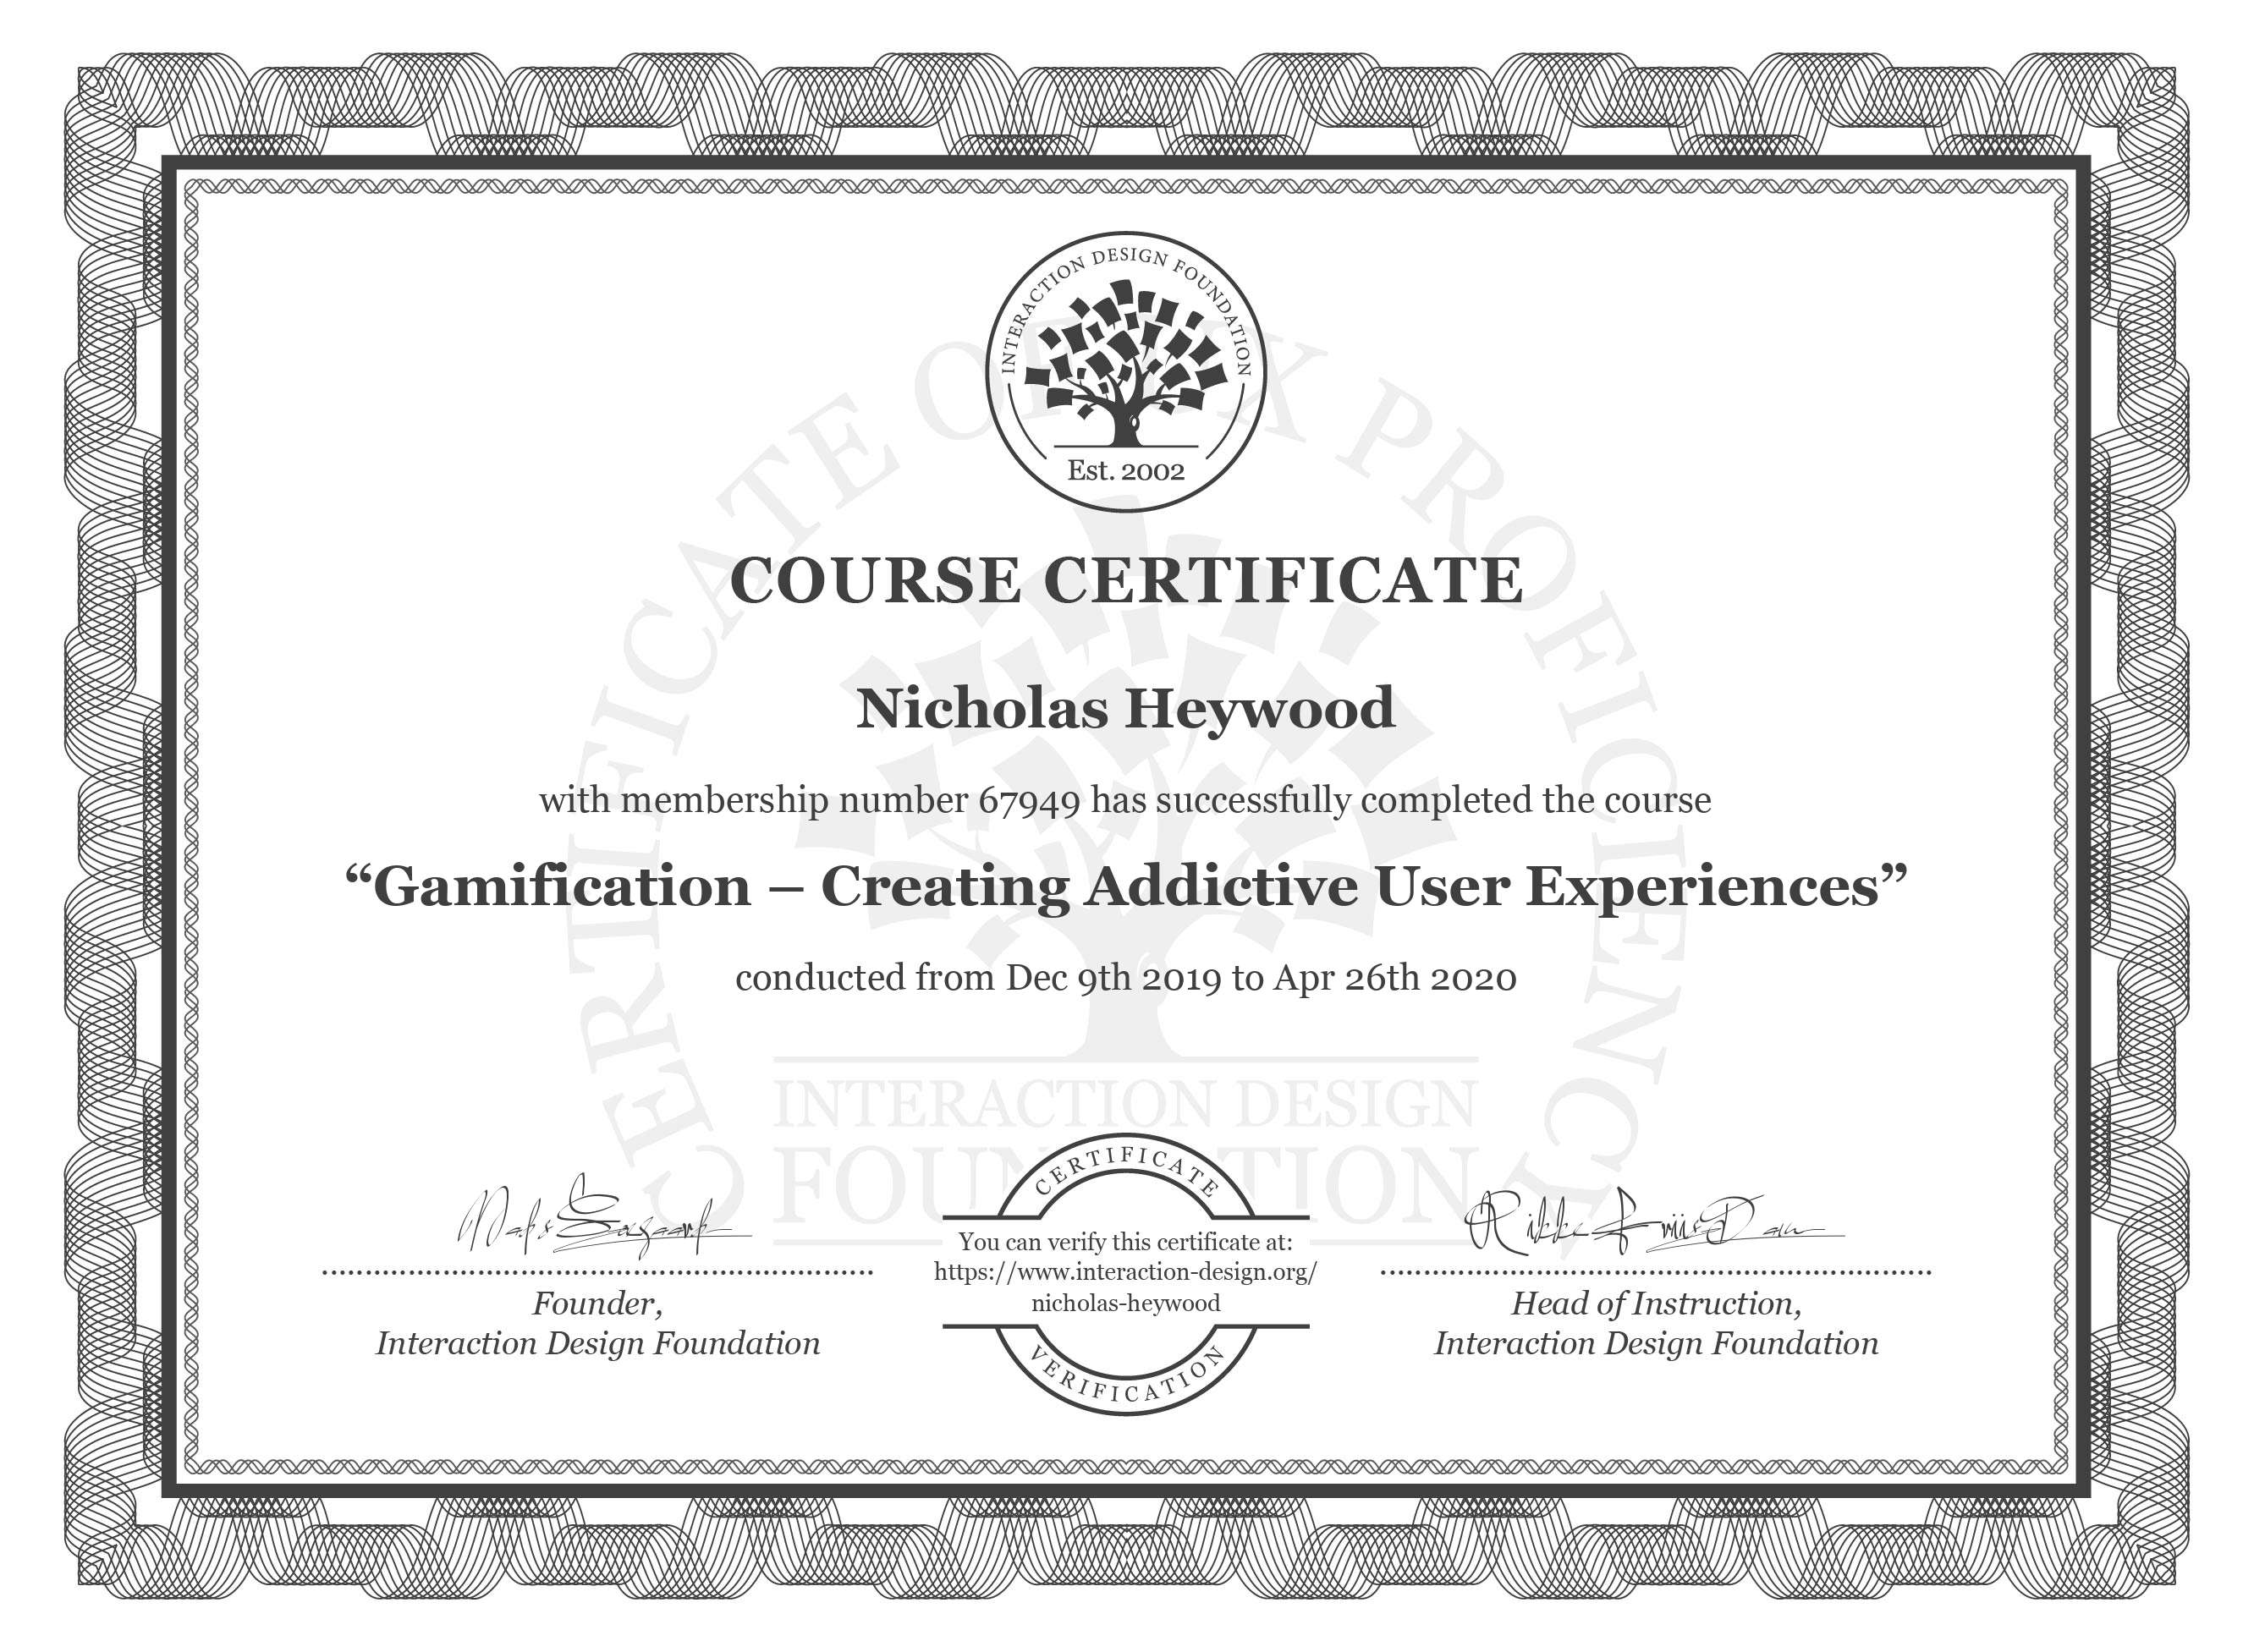 Nicholas' Certificate for completing a gamification course with IDF